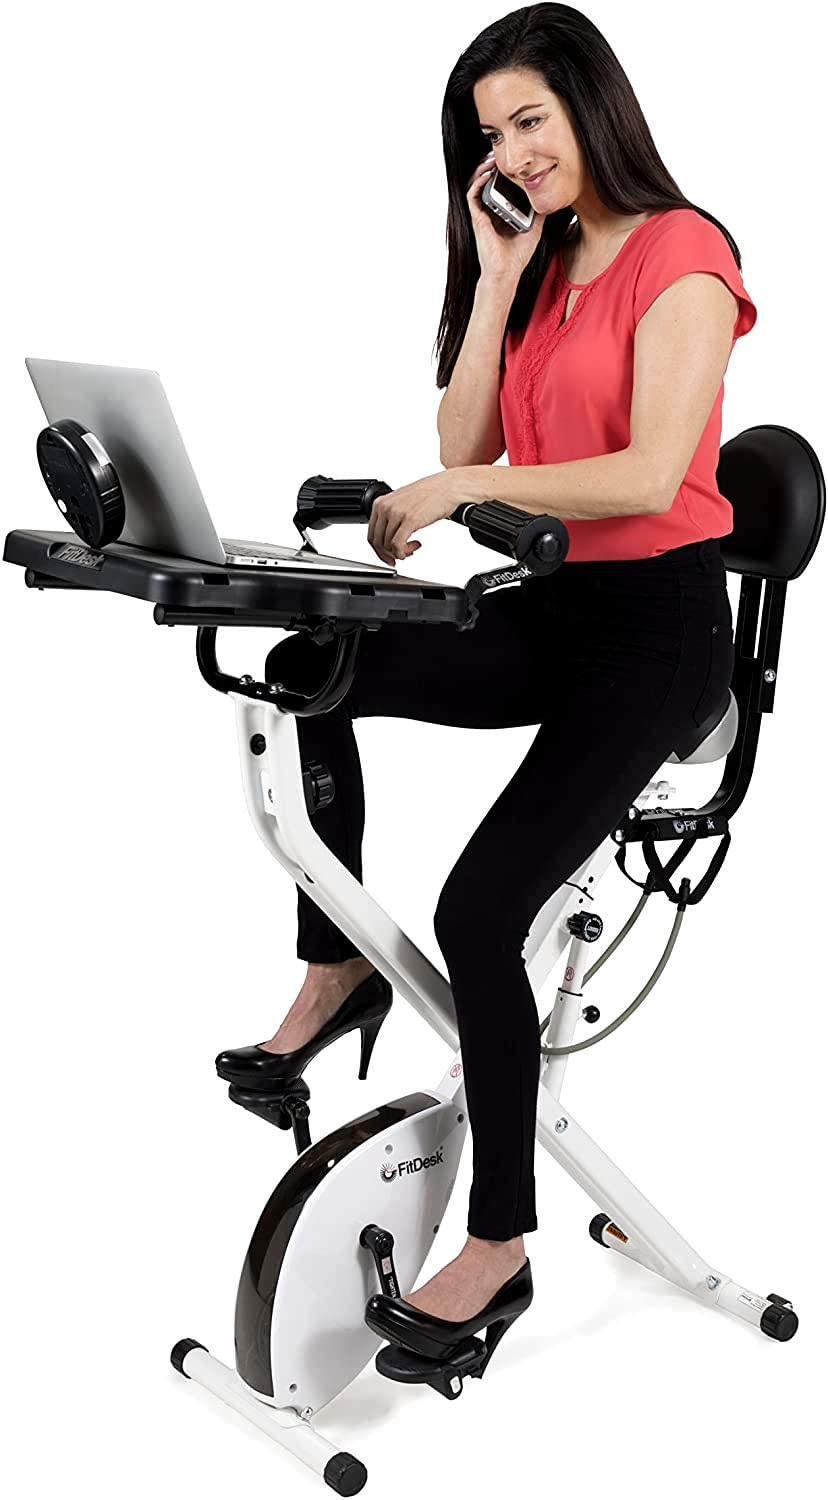 Top 10 Best Folding Exercise Bike Reviews 2020 9